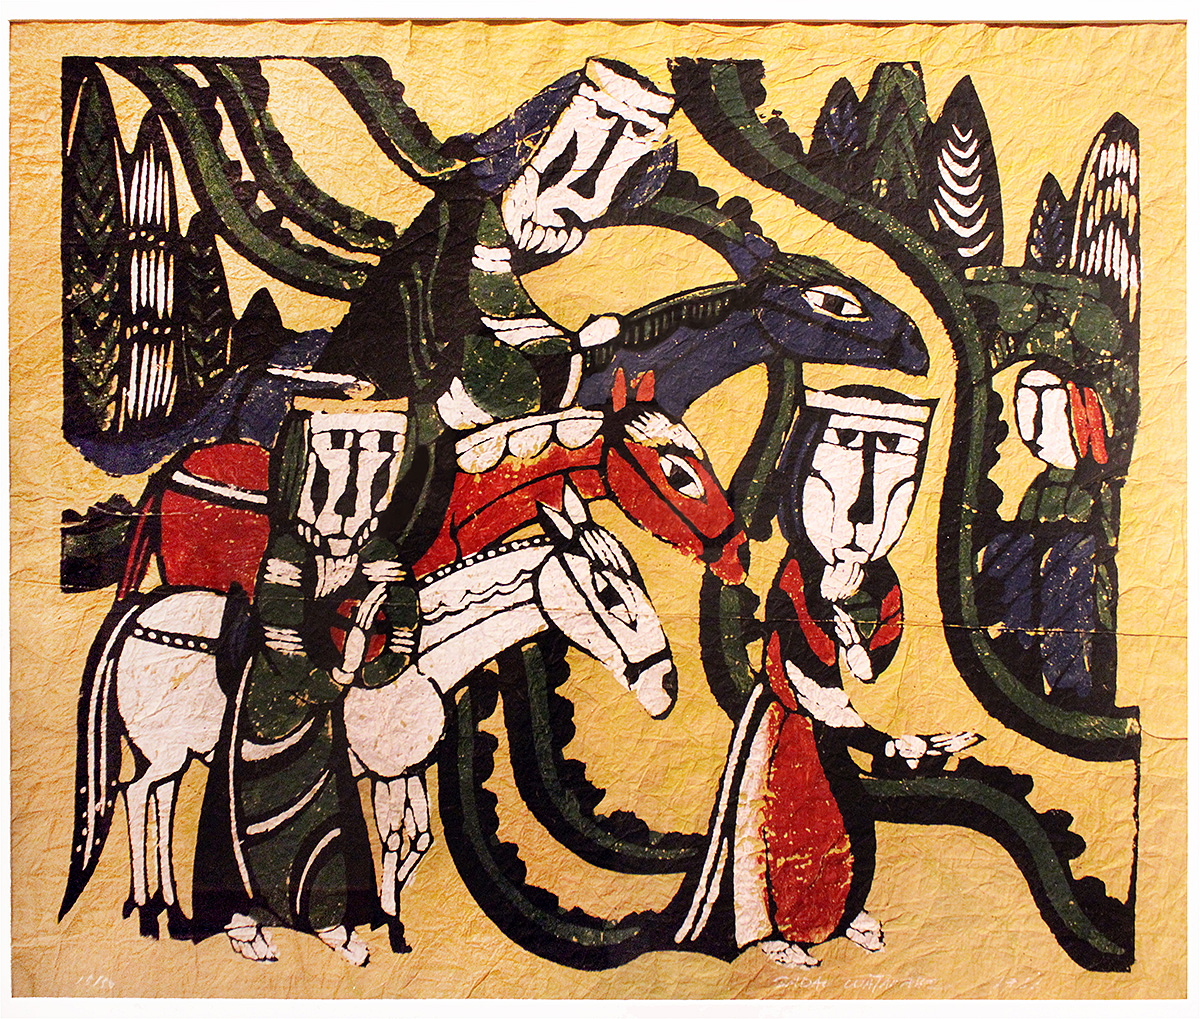 The image depicts the print Arrival of the Three Kings, created in 1966 by Japanese artist Sadao Watanabe